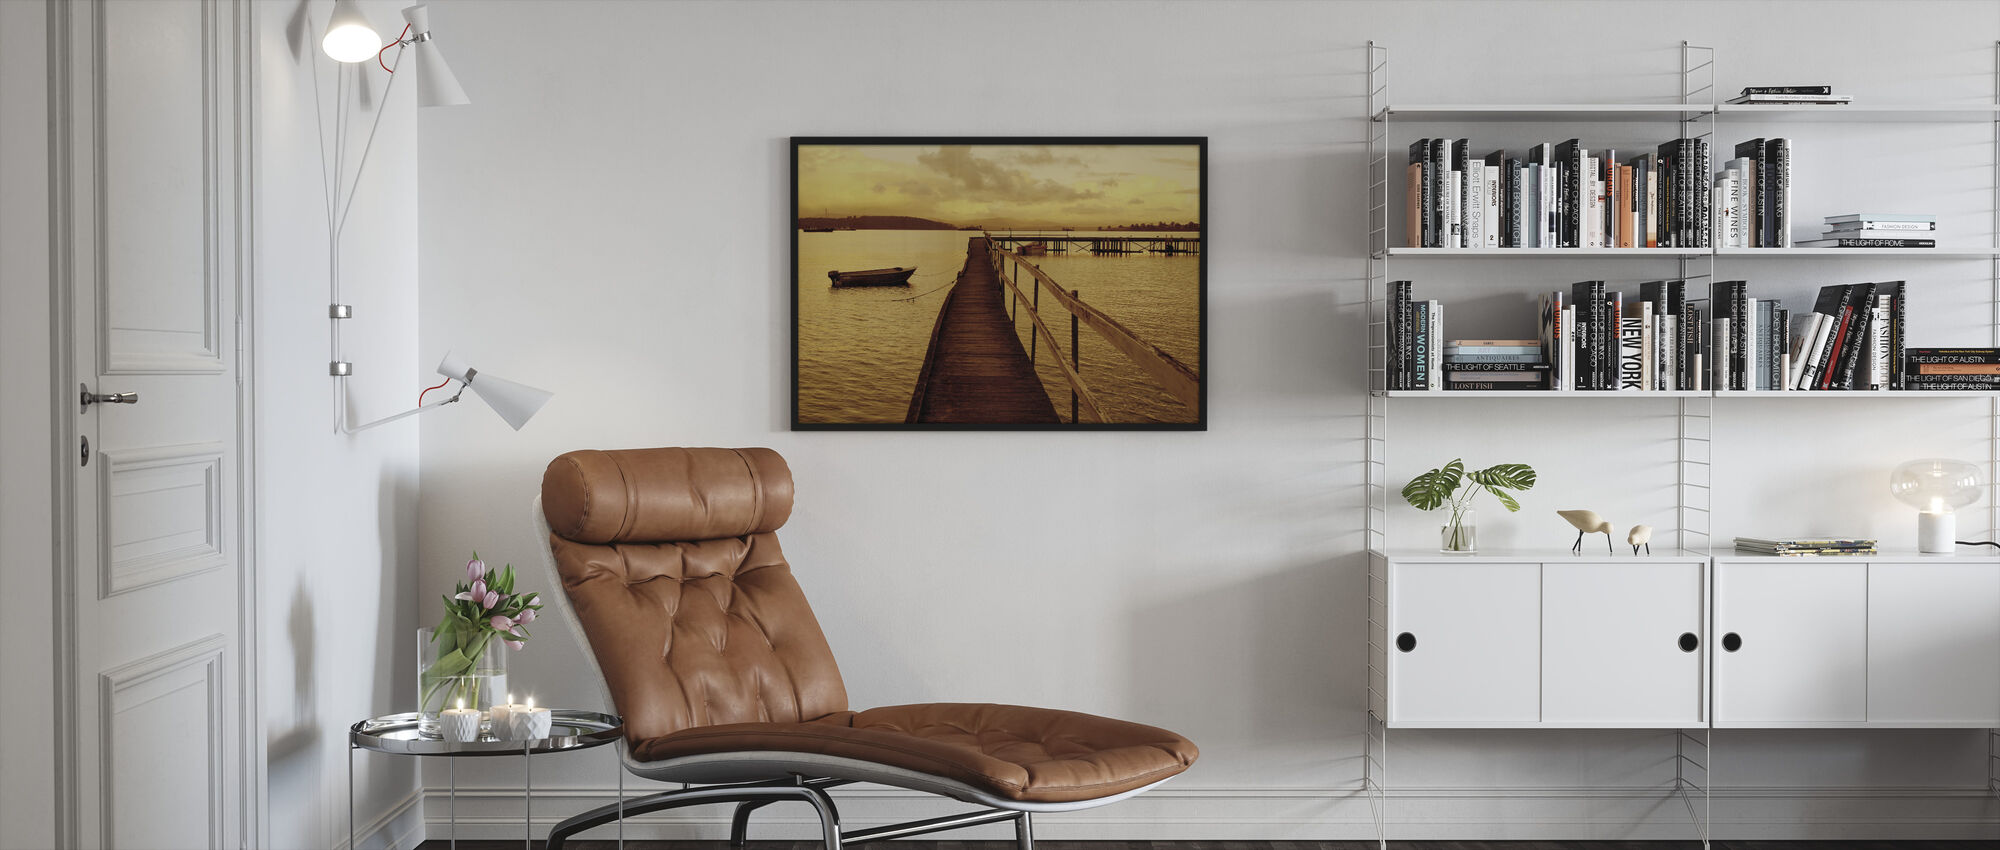 Art Of Waiting - Framed print - Living Room